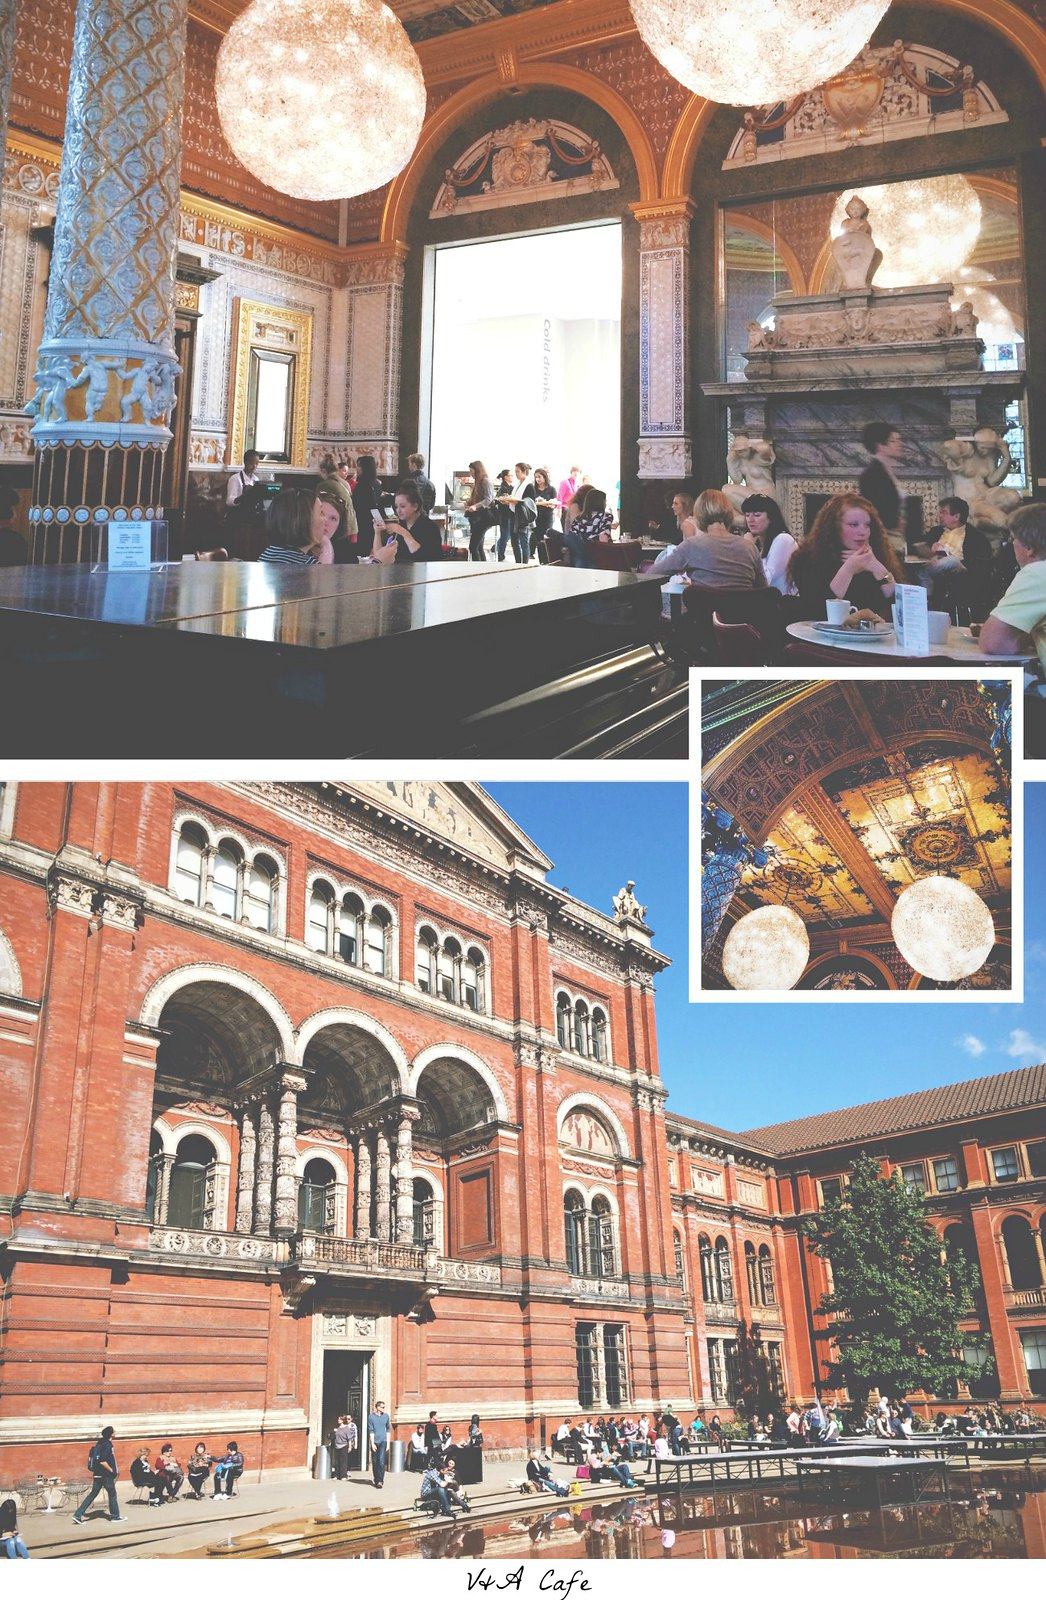 V&A Café at the V&A Museum, London | via It's Travel O'Clock